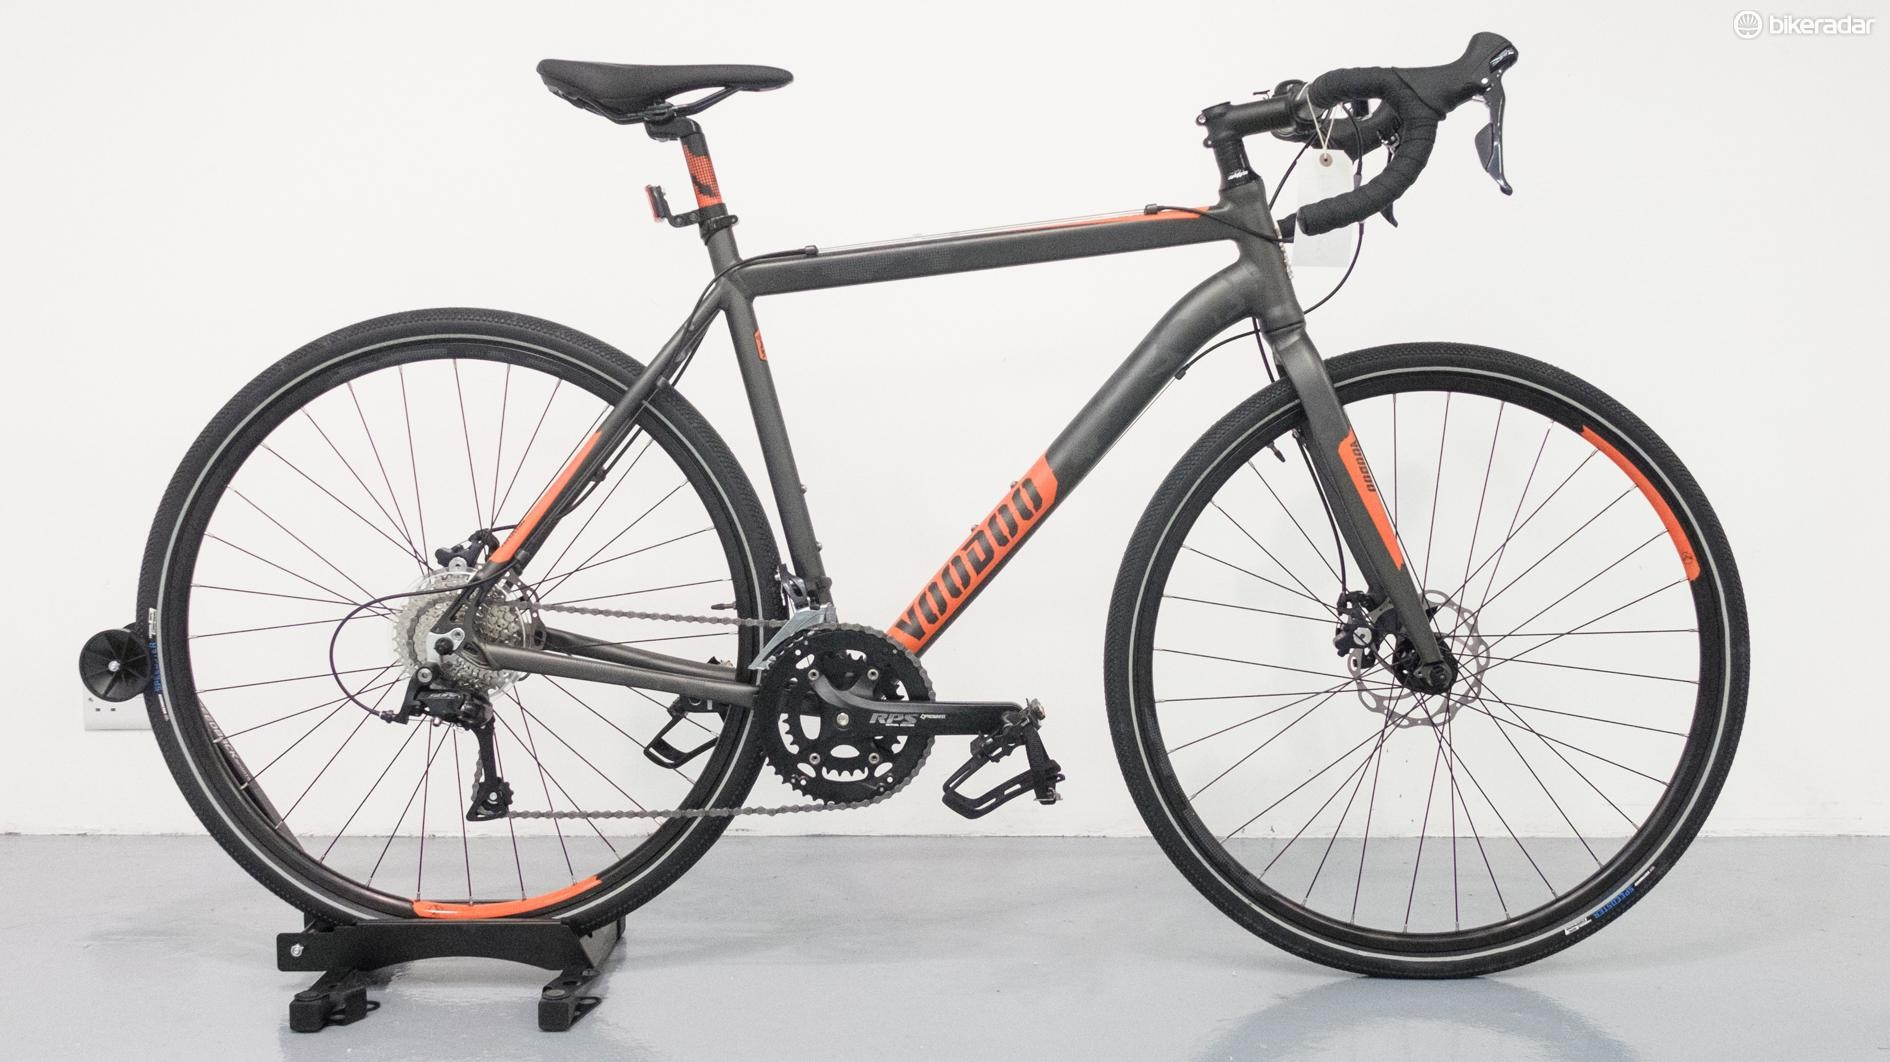 The Nakisi first debuted as a monster 'cross bike way back when